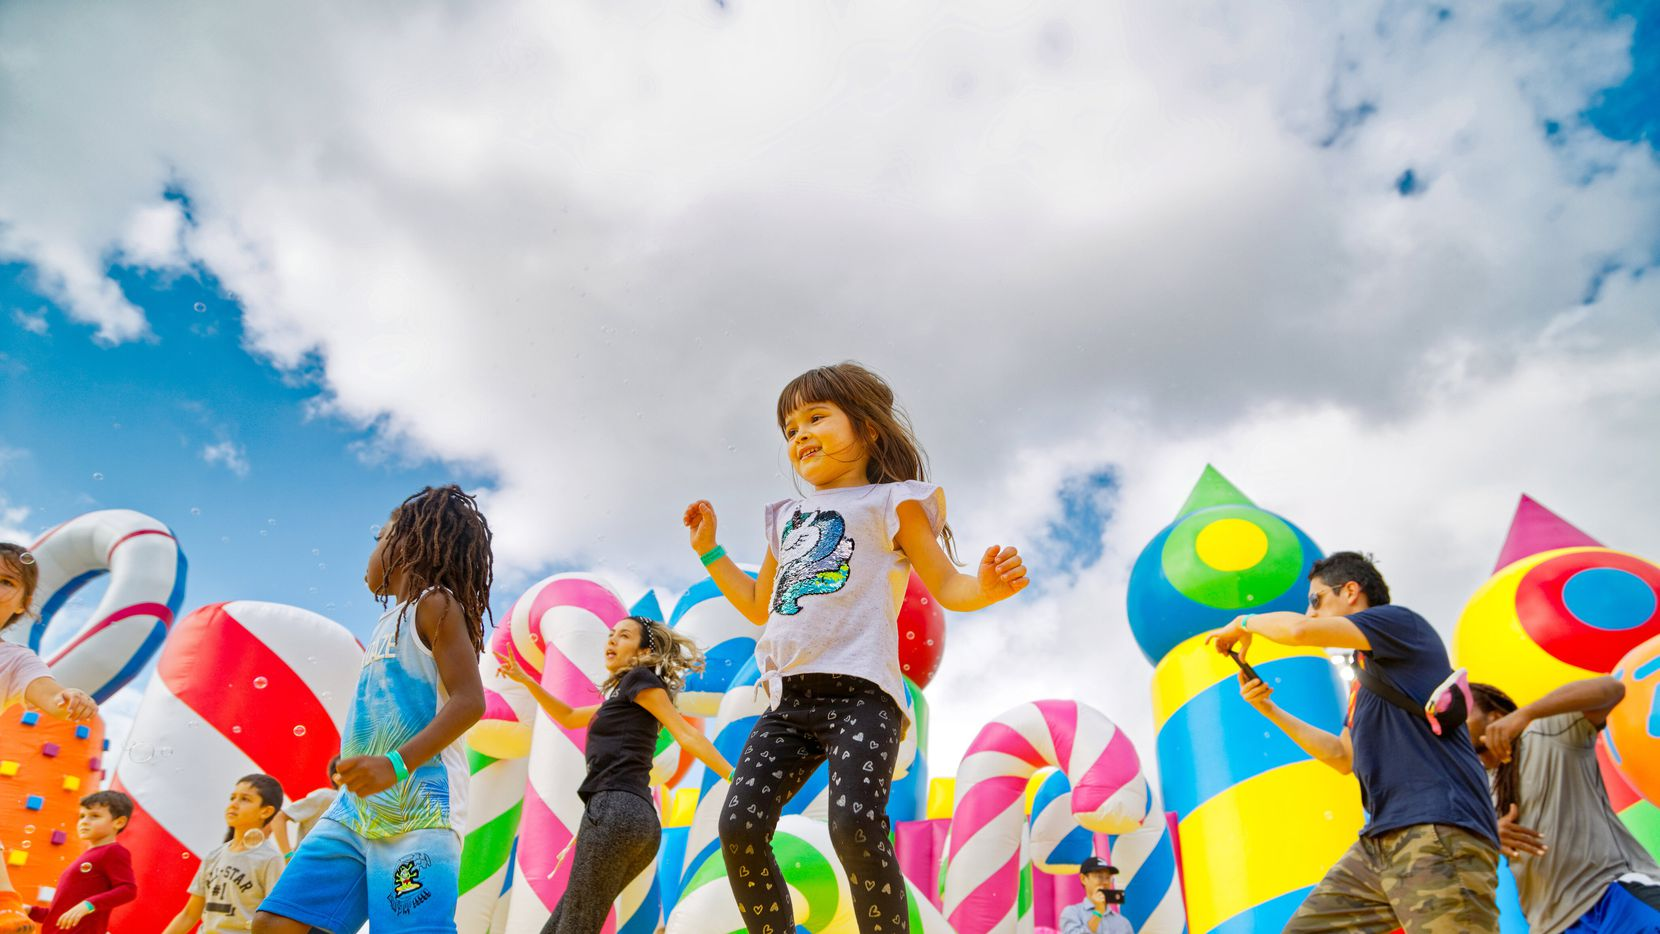 The Big Bounce America touring inflatable event will be at Southfork Ranch in Parker Oct. 9-10 and Oct. 15-17.